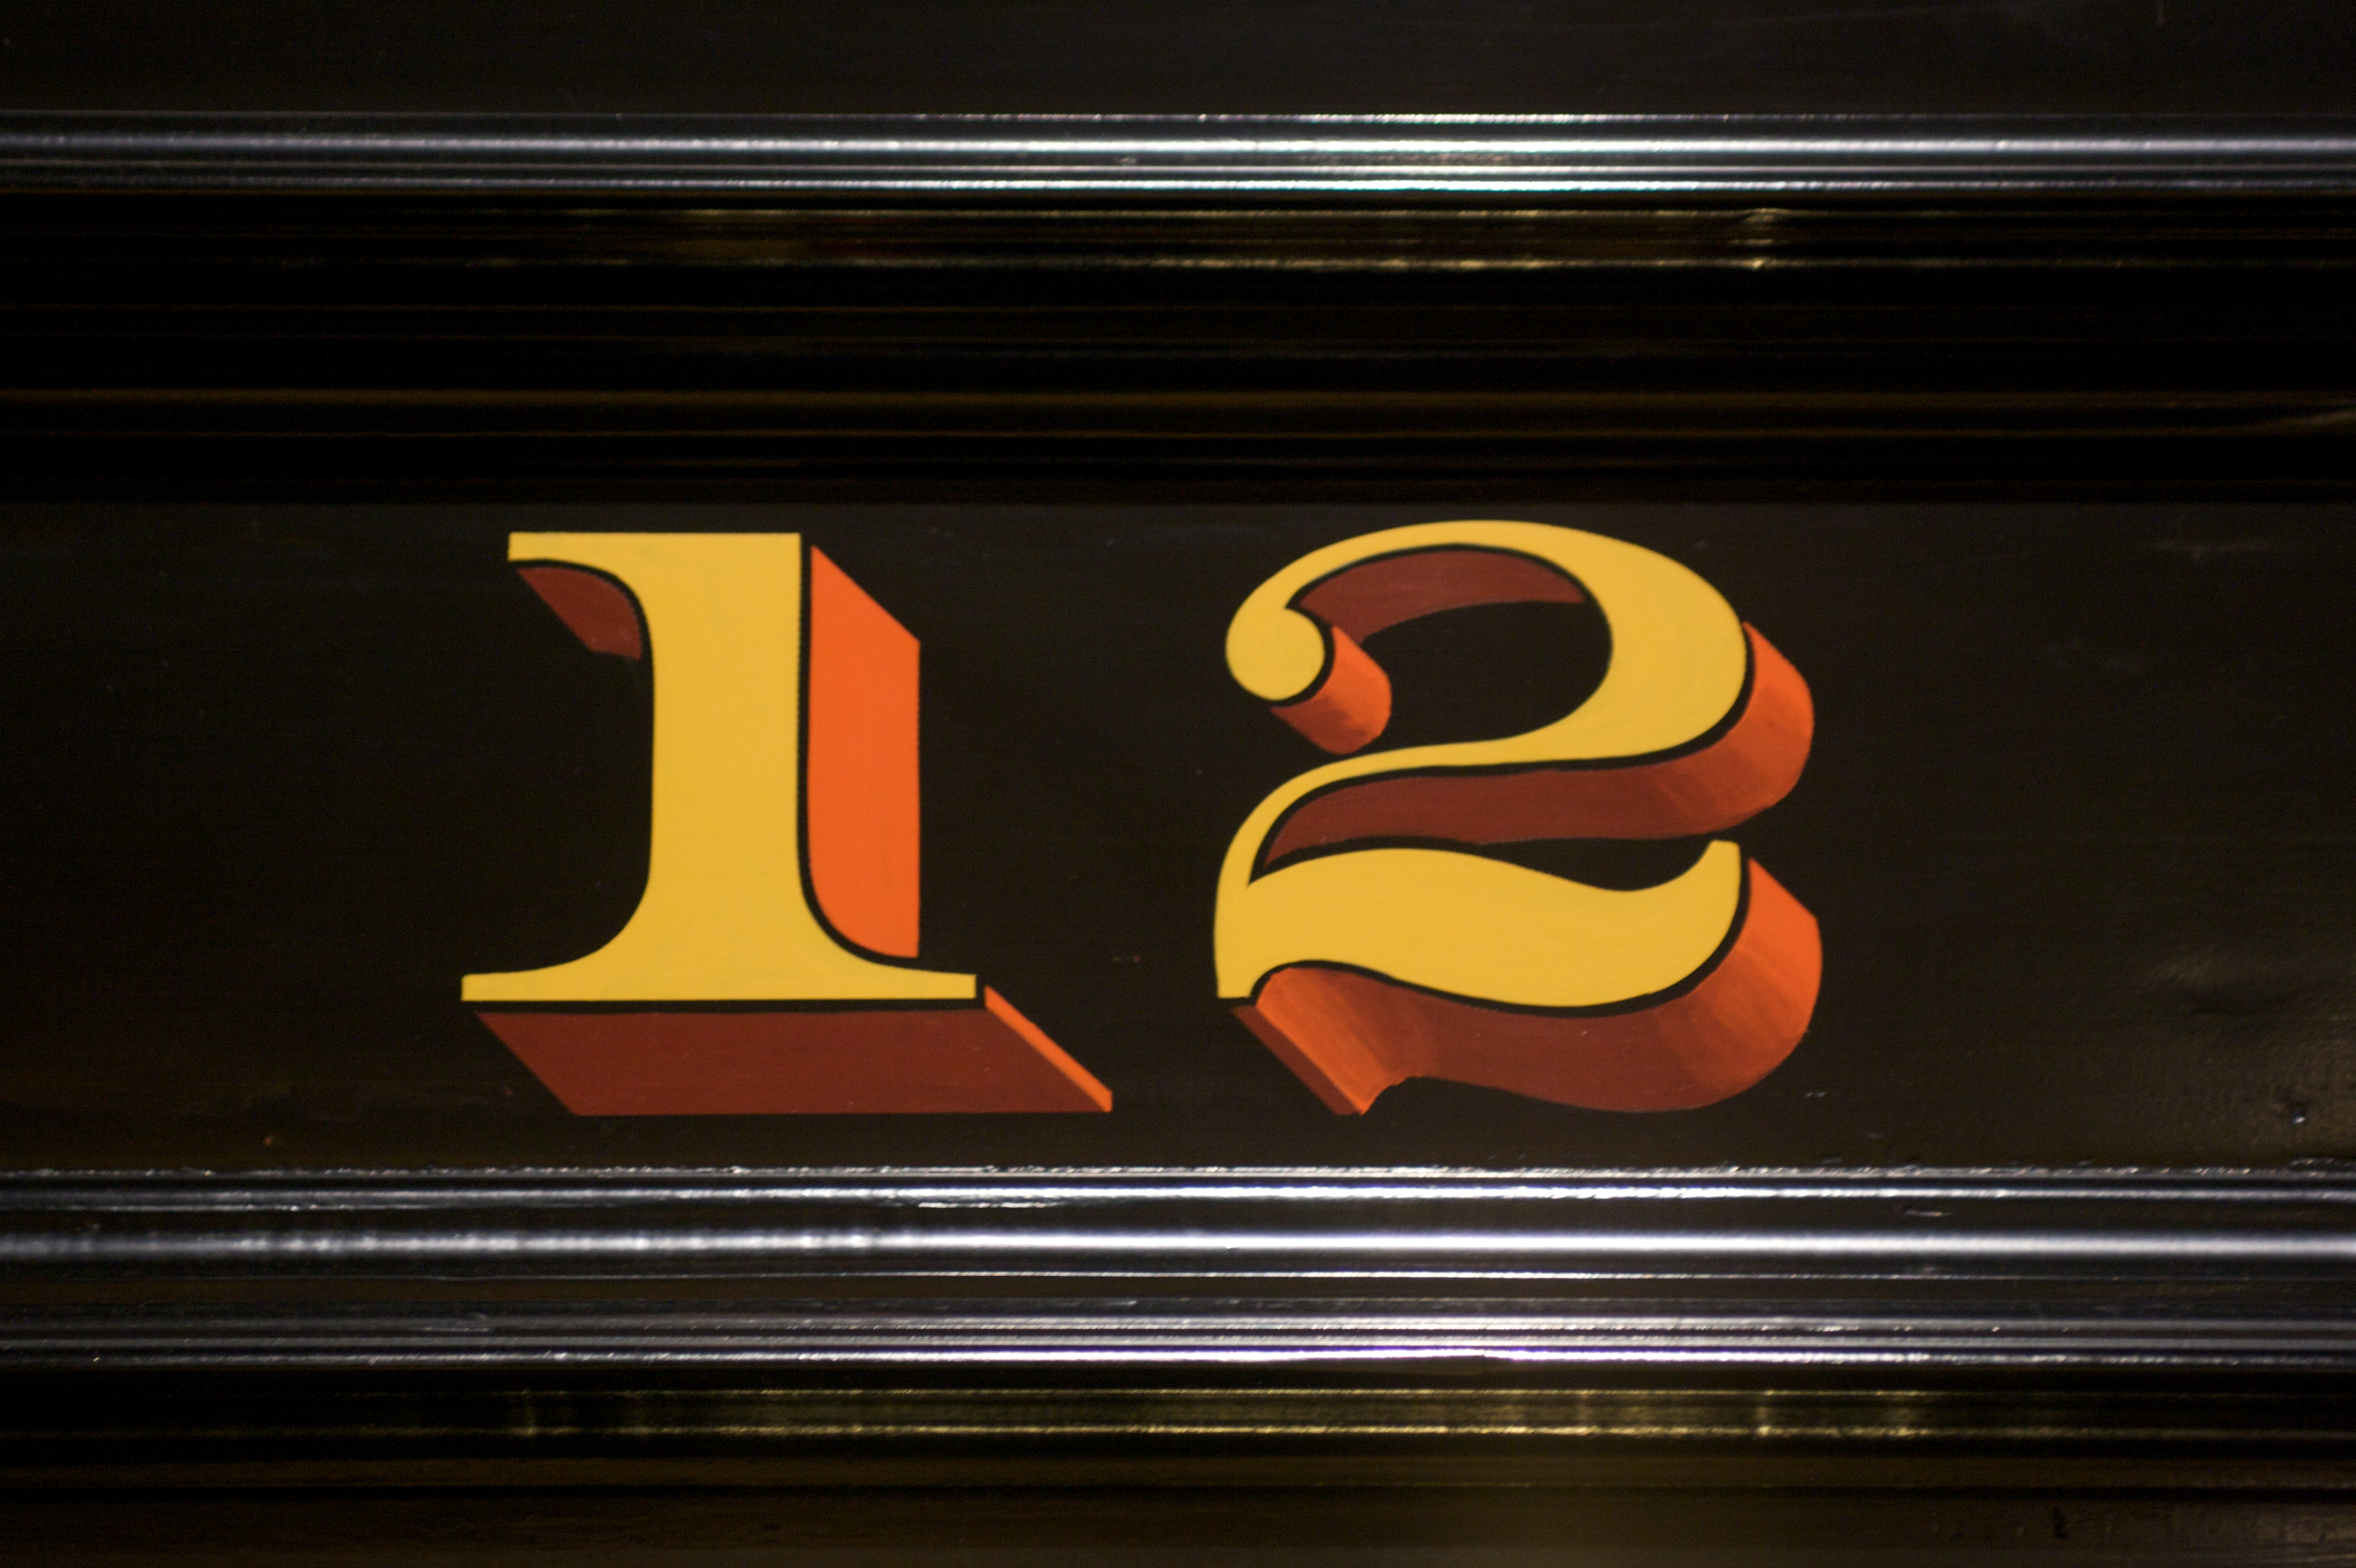 चित्र:The number 12.jpg - विकिपीडिया: http://ne.wikipedia.org/wiki/चित्र:The_number_12.jpg